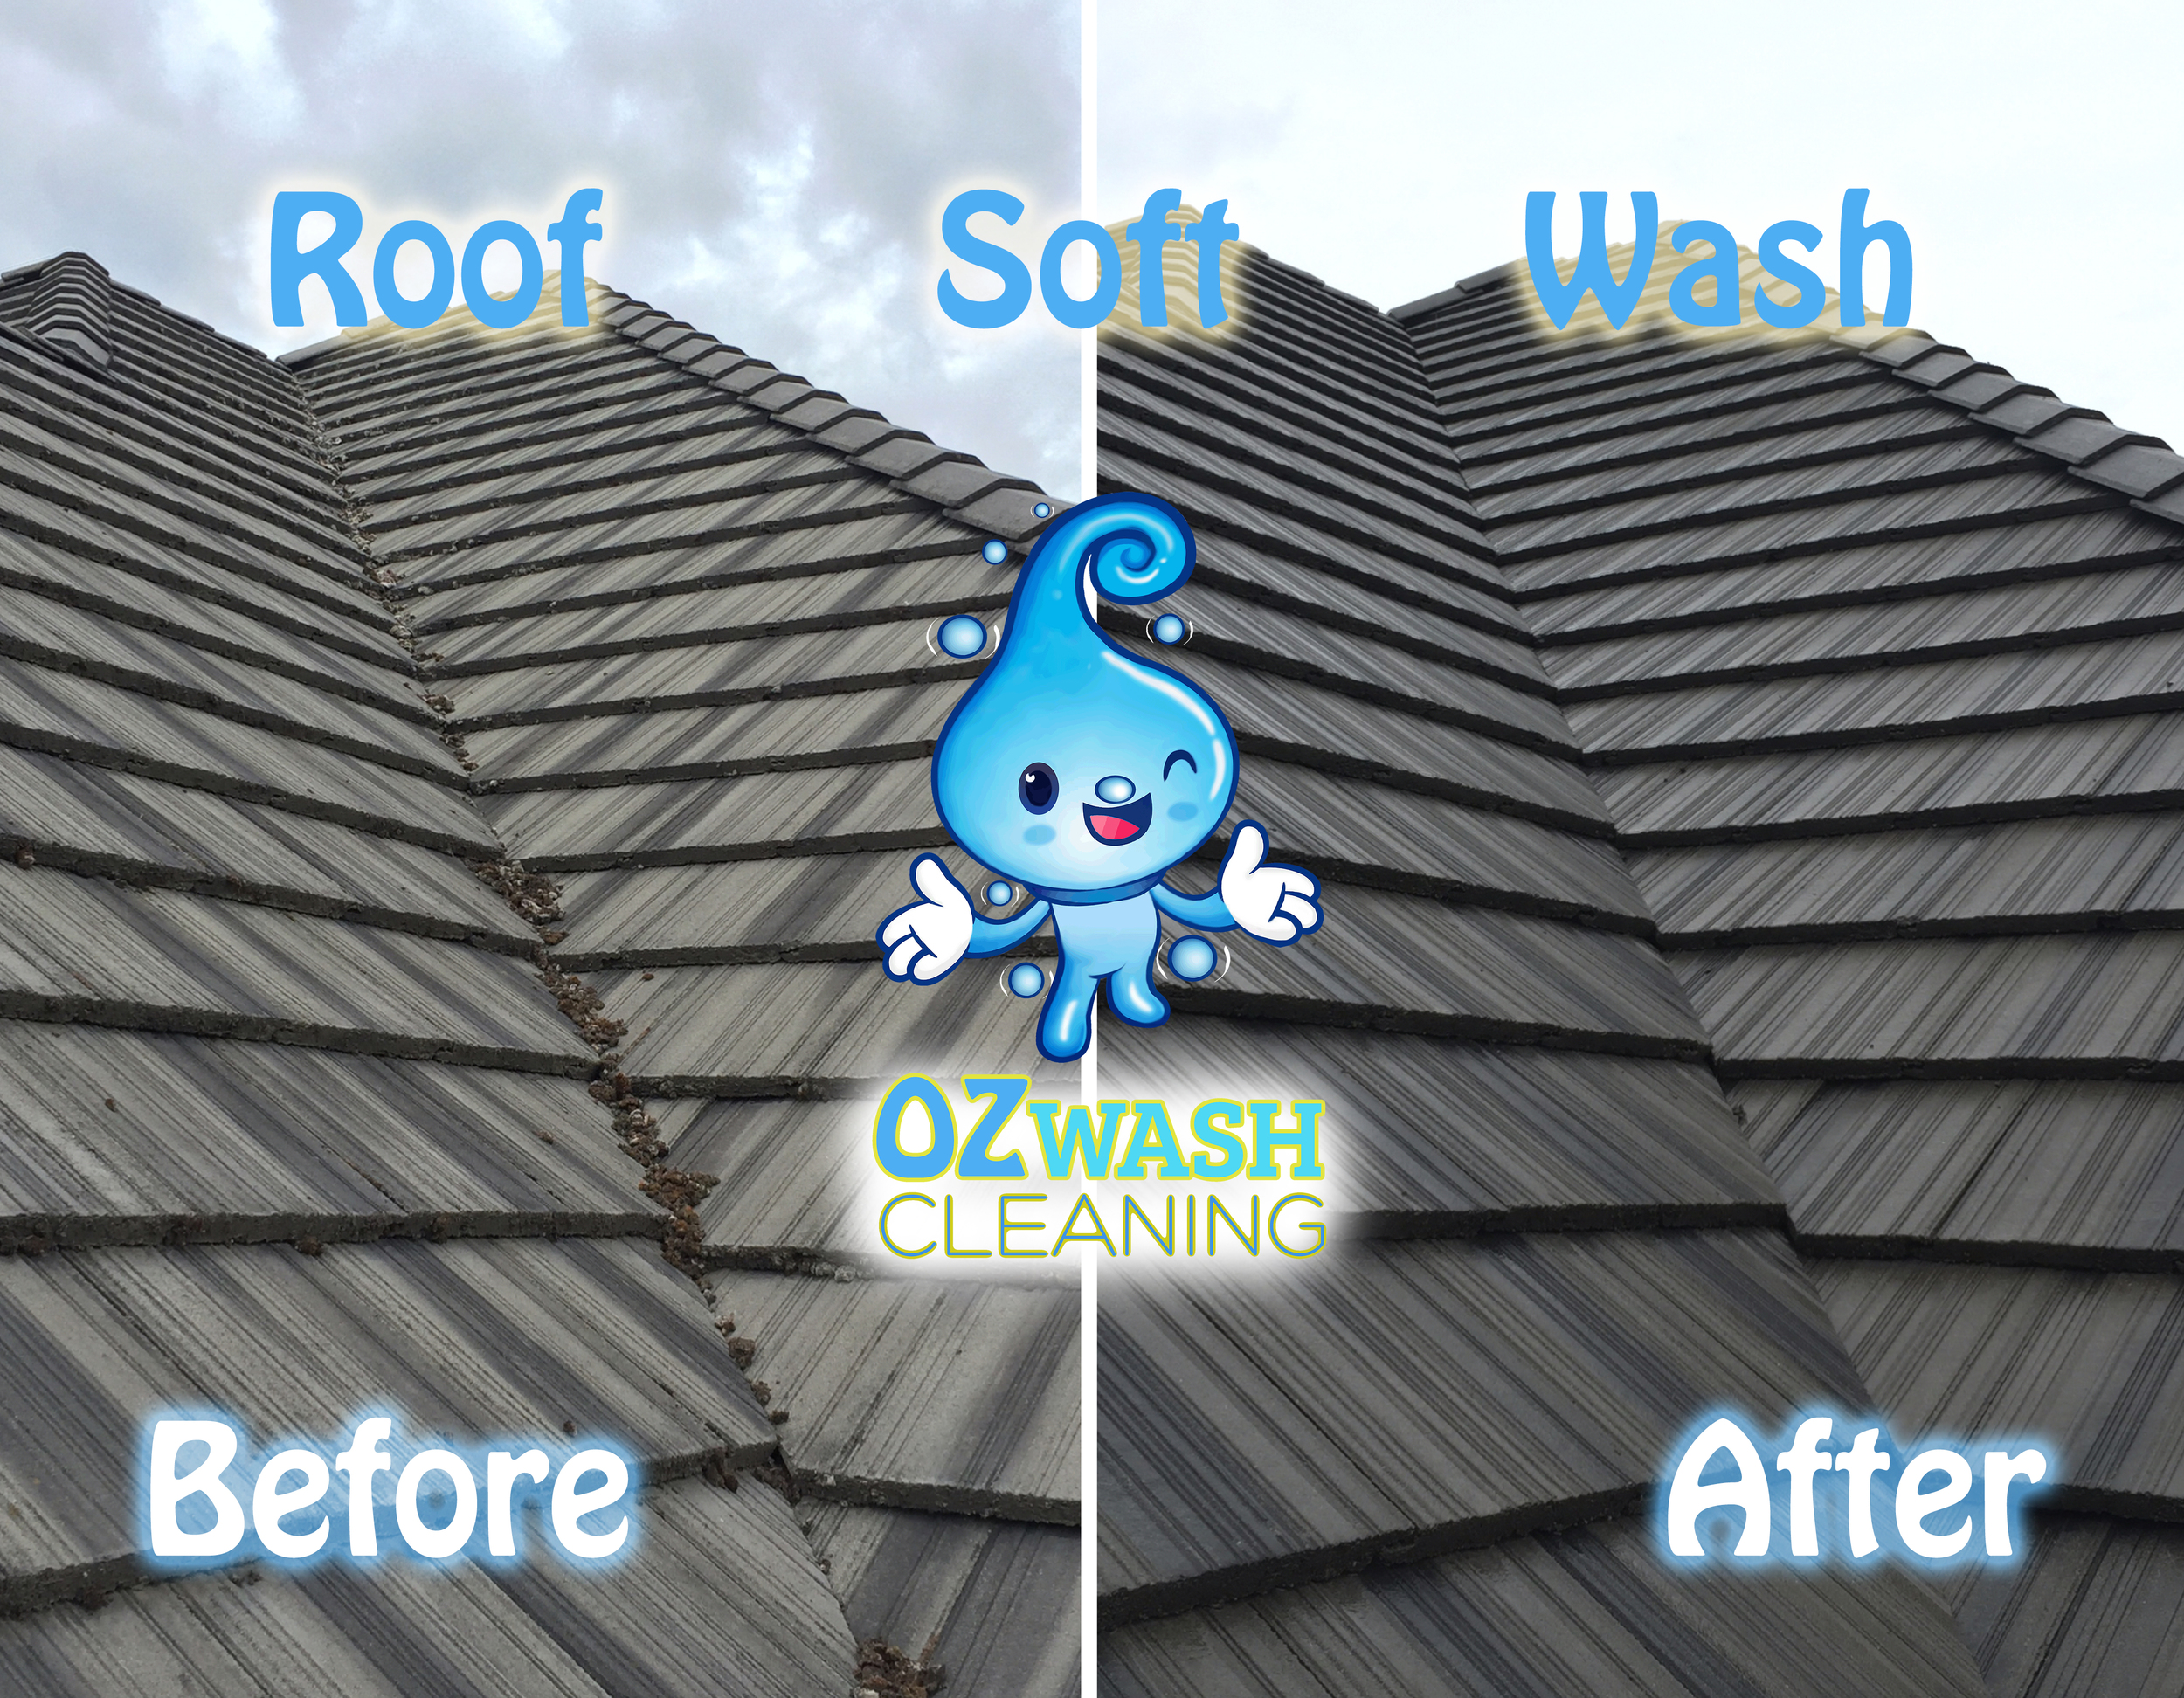 roofsoftwash6.jpg